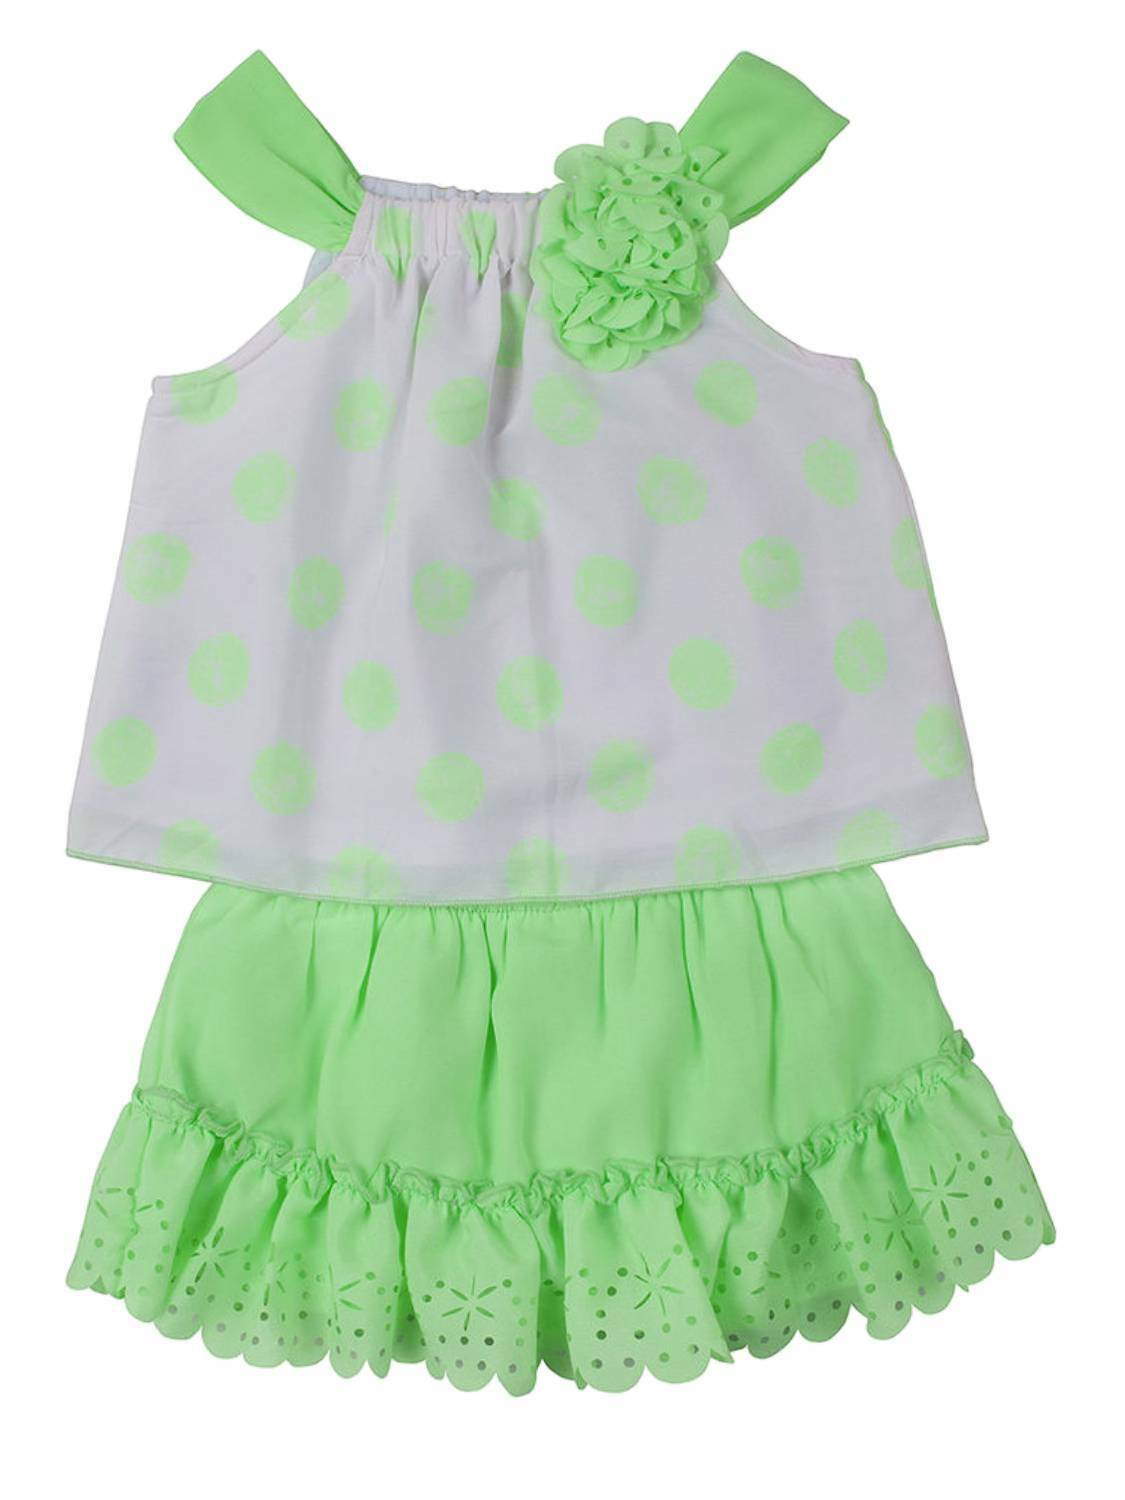 caa6d08ec822 Little Lass Infant Girls Green White Polka Dot Top Scooter Outfit 2 ...